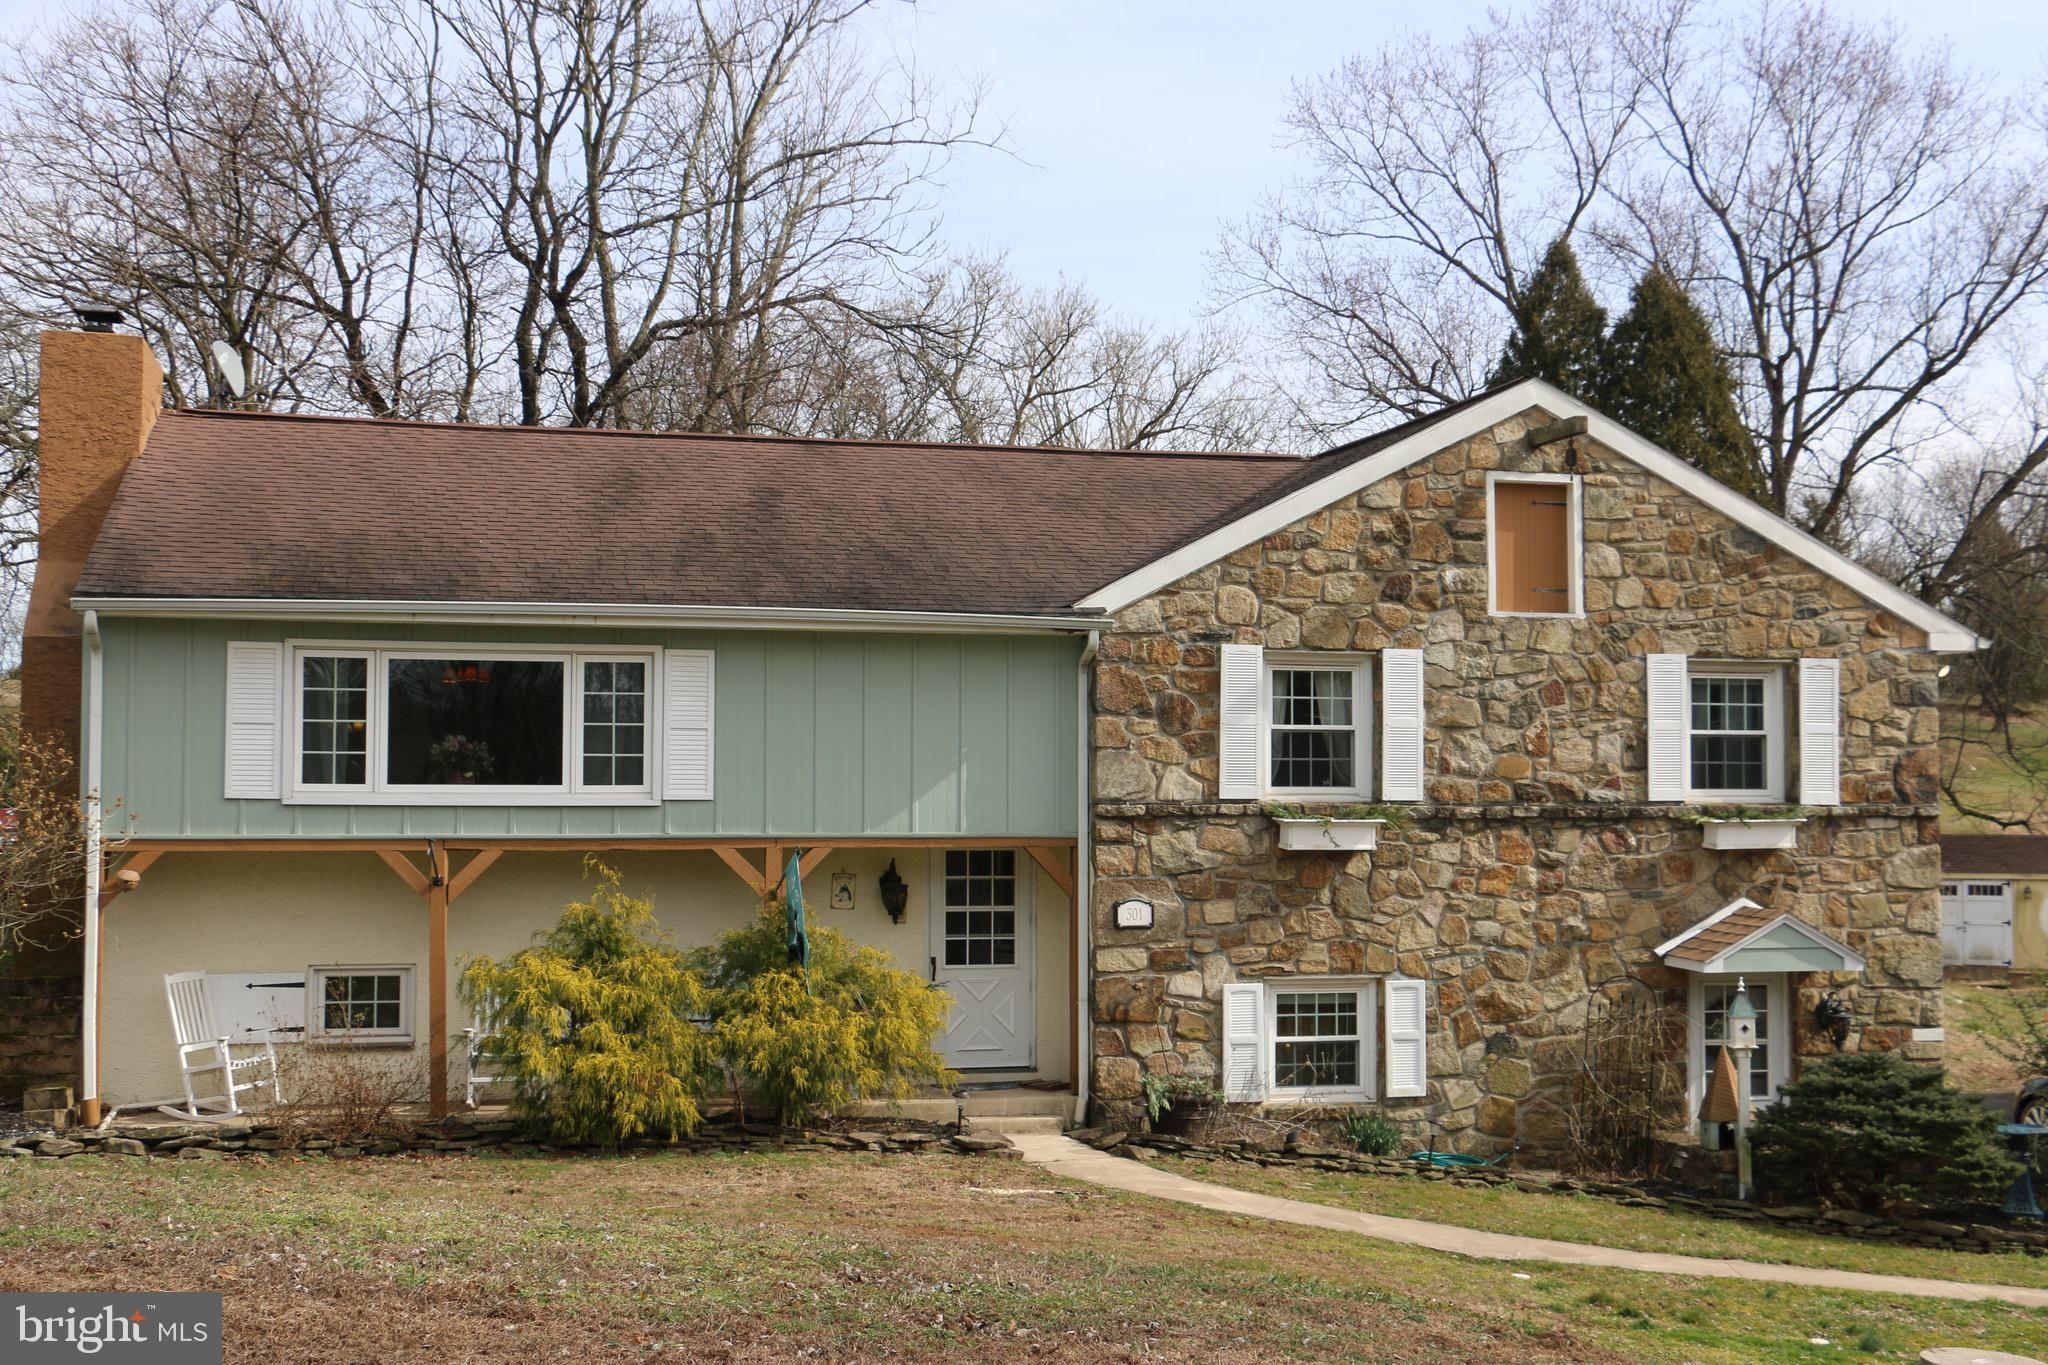 301 SMITH ROAD, SCHWENKSVILLE, PA 19473